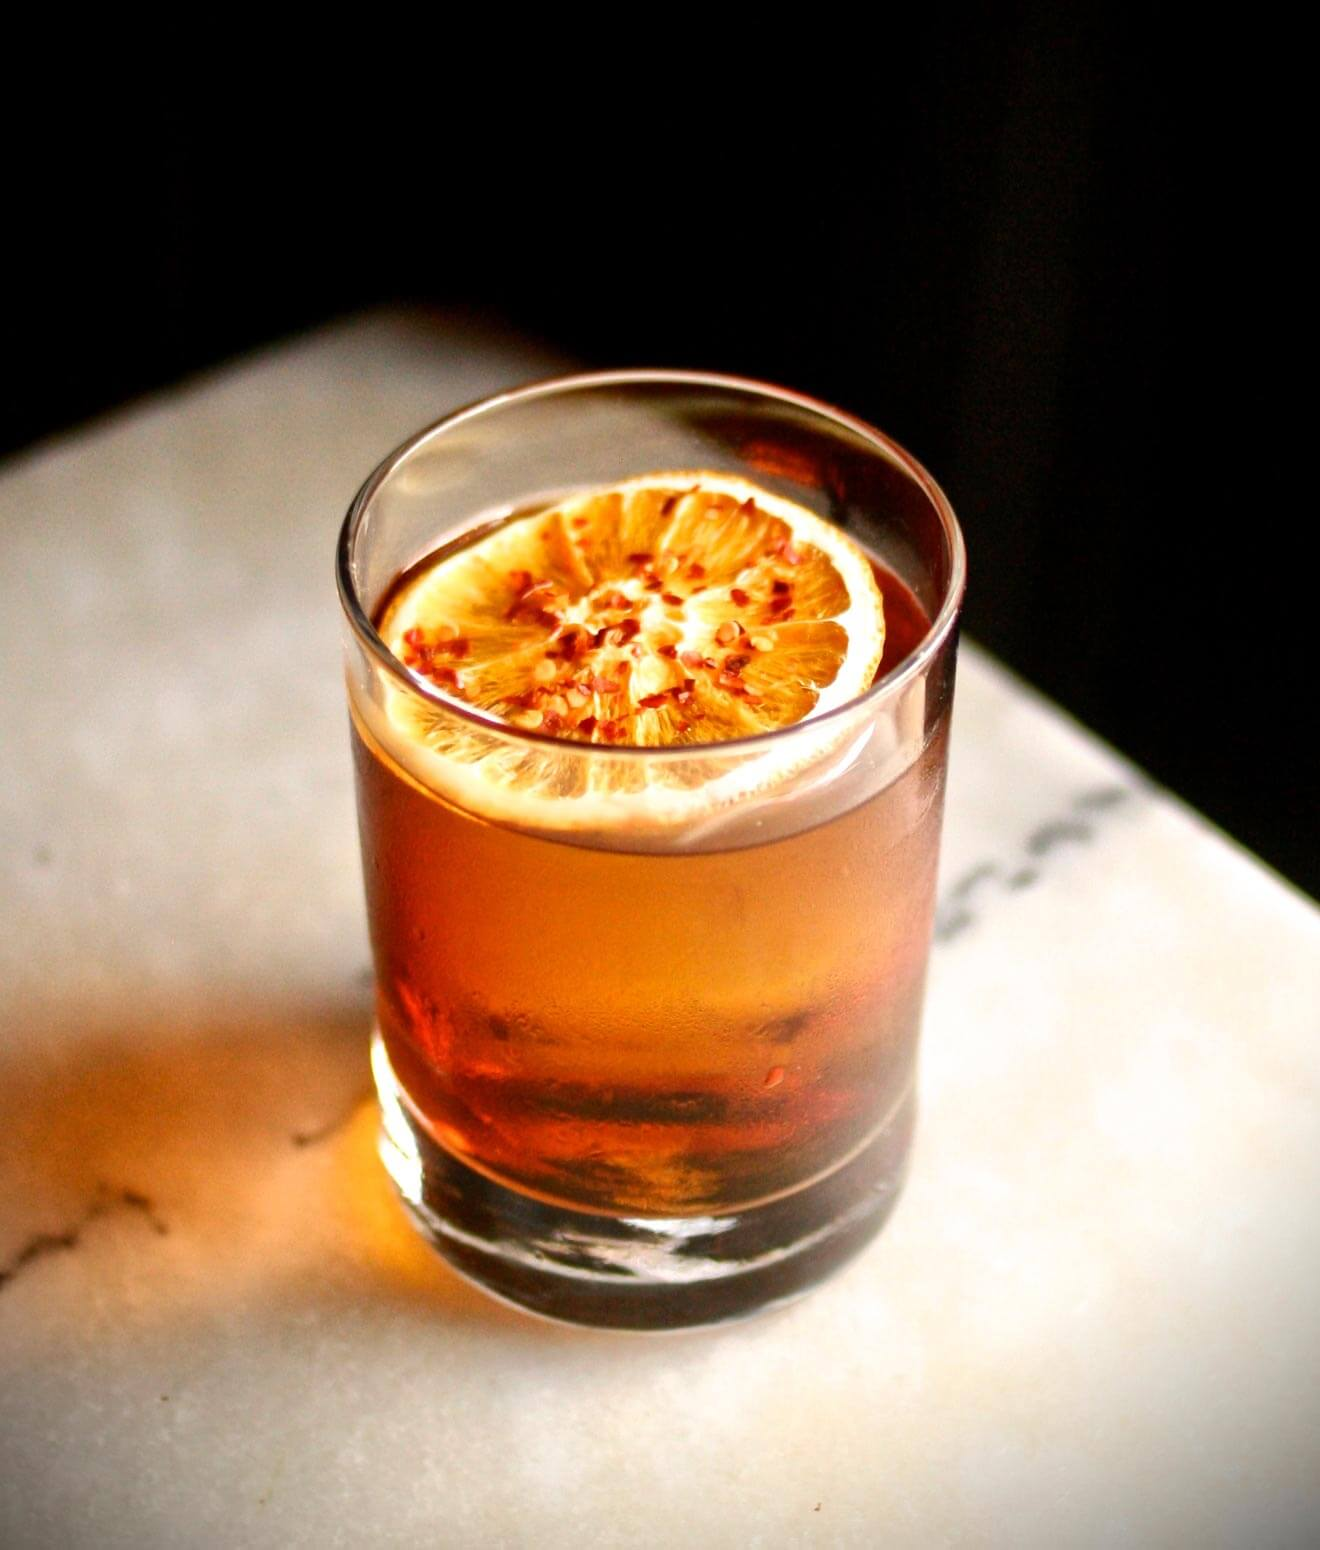 Gaucho With a Vengeance, cocktail with dried fruit garnish